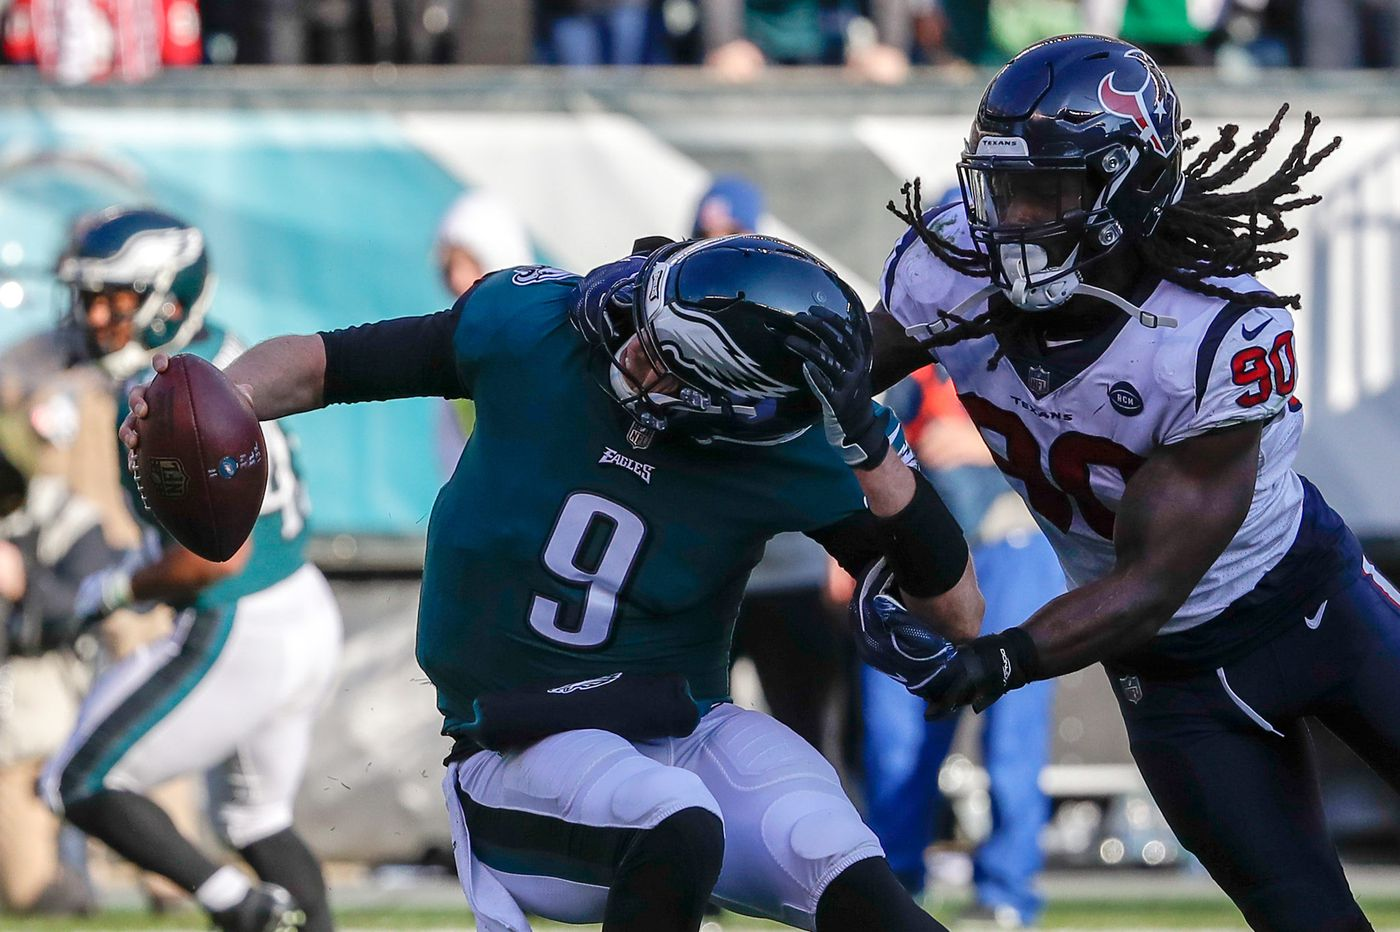 Resilient Eagles overcome officials, mistakes, and injuries to beat Texans and stay alive   Marcus Hayes